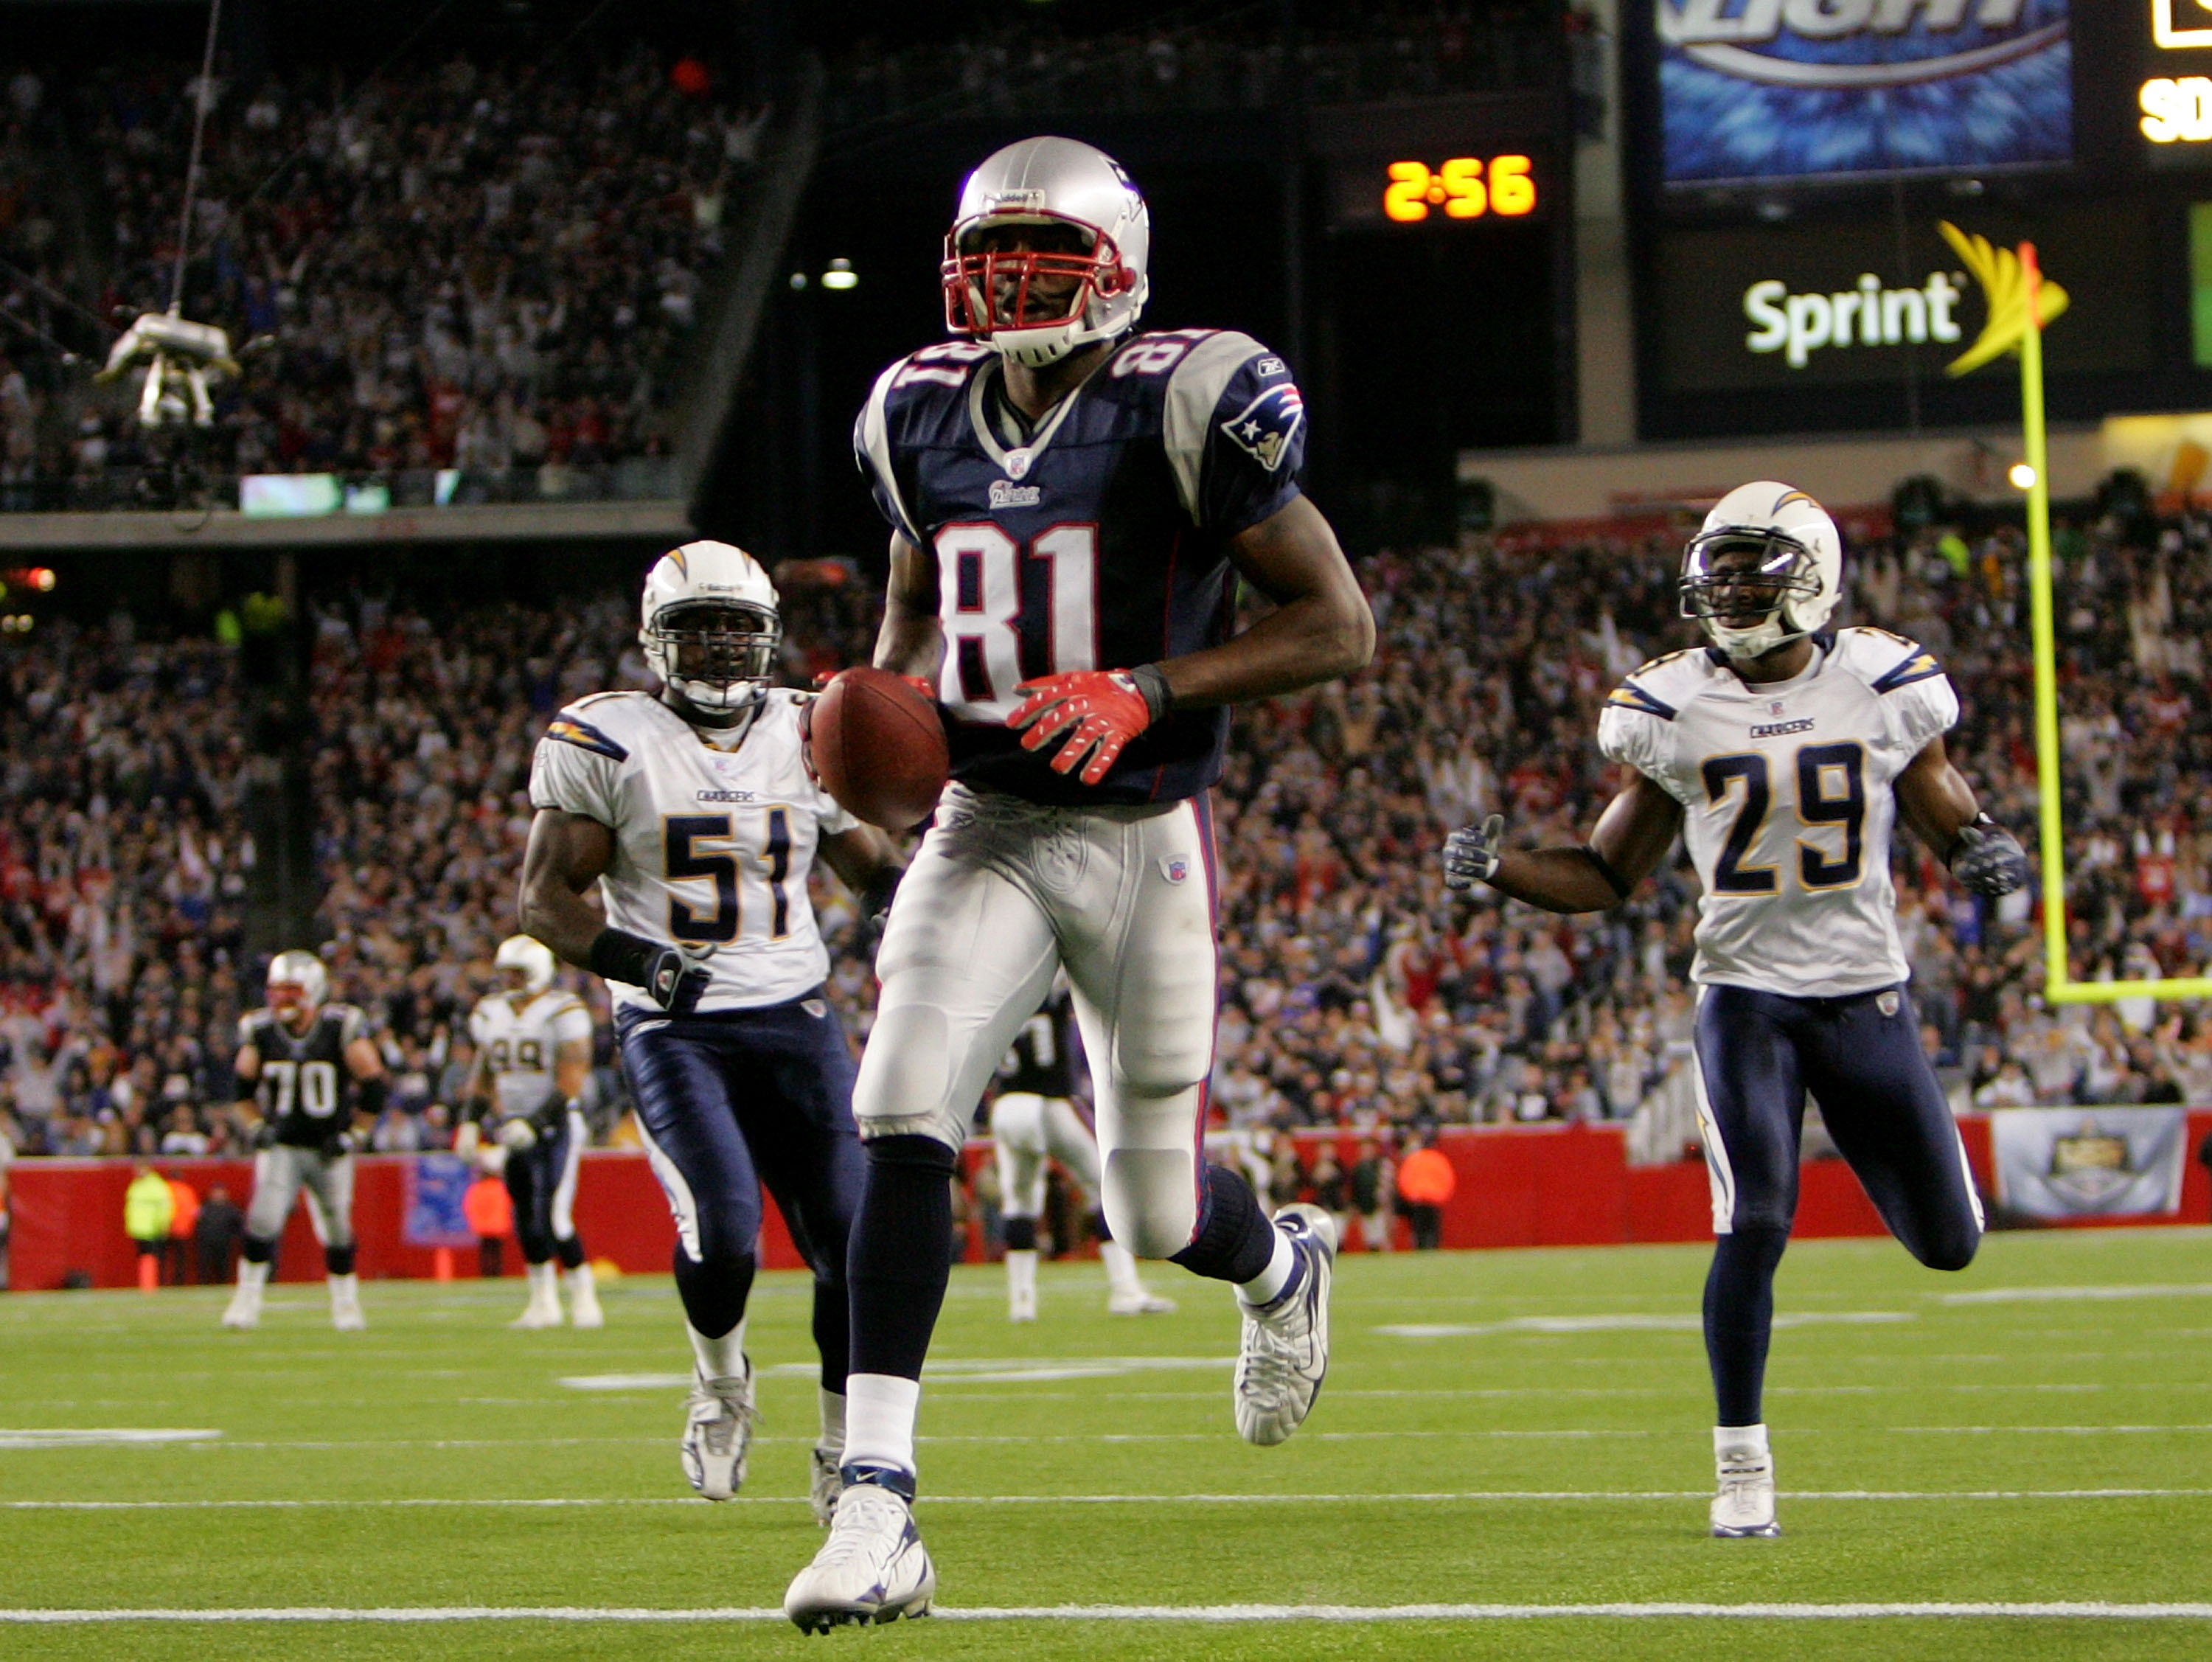 FOXBORO, MA - SEPTEMBER 16:  Randy Moss #81 of the New England Patriots scores a touchdown against the San Diego Chargers during their game at Gillette Stadium September 16, 2007 in Foxboro, Massachusetts.  (Photo by Nick Laham/Getty Images)